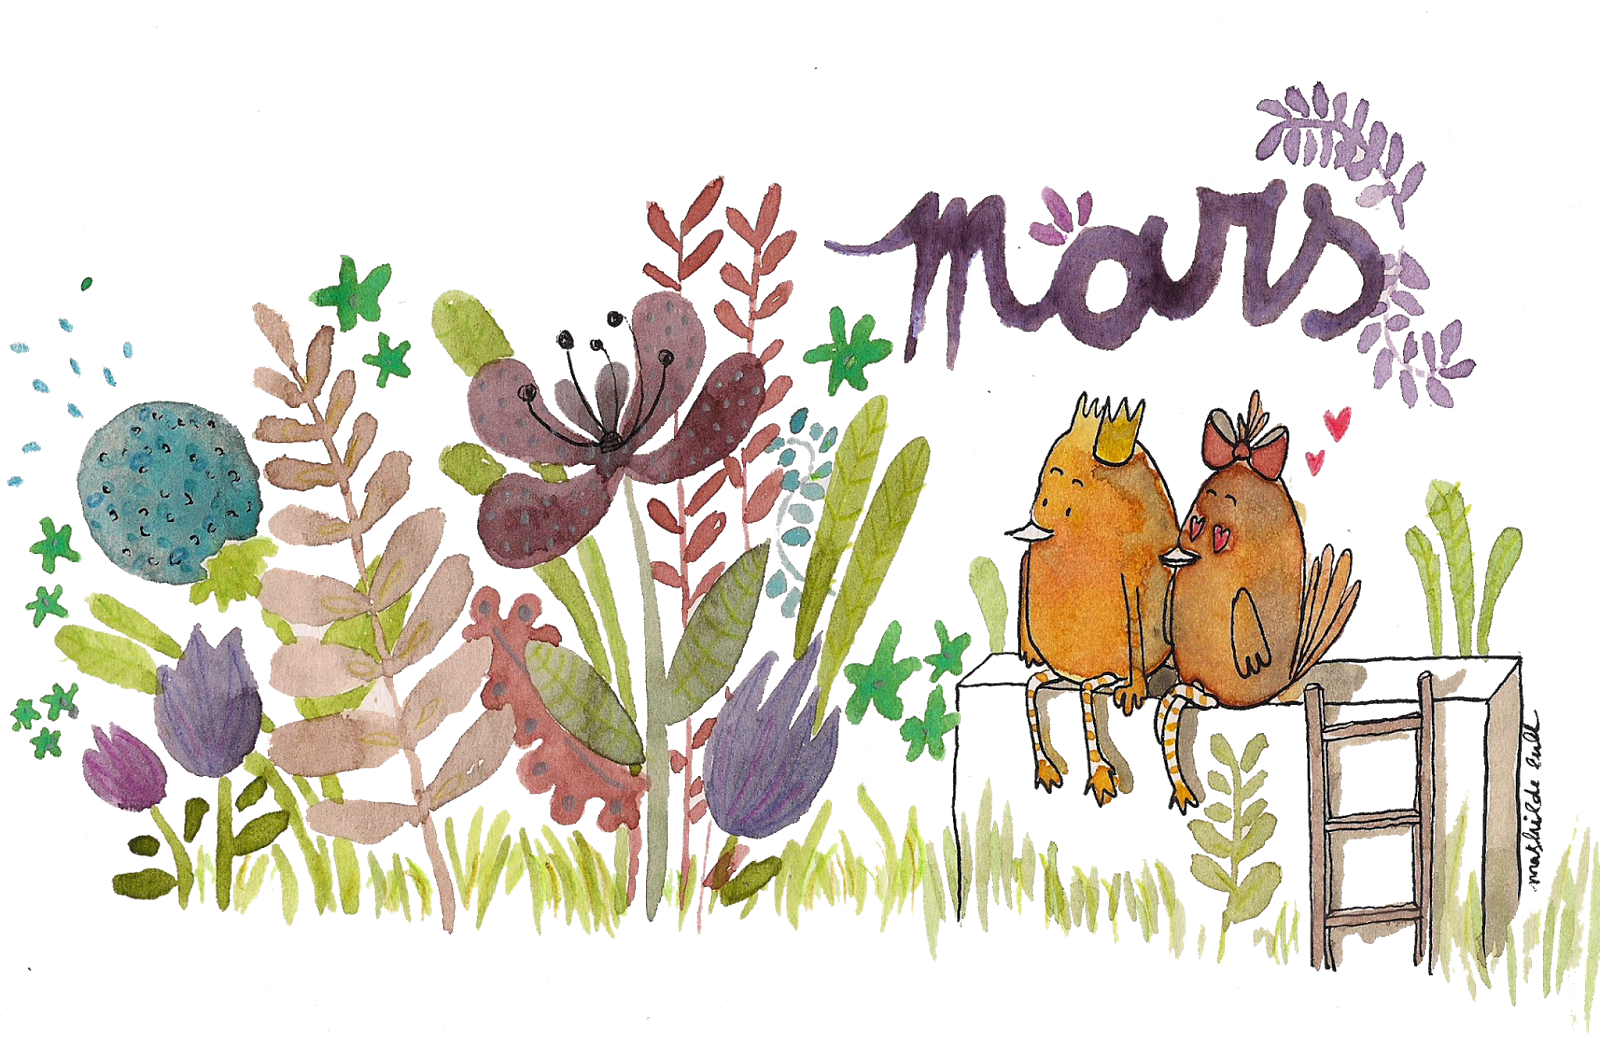 Clipart mois de mars clipart images gallery for free.